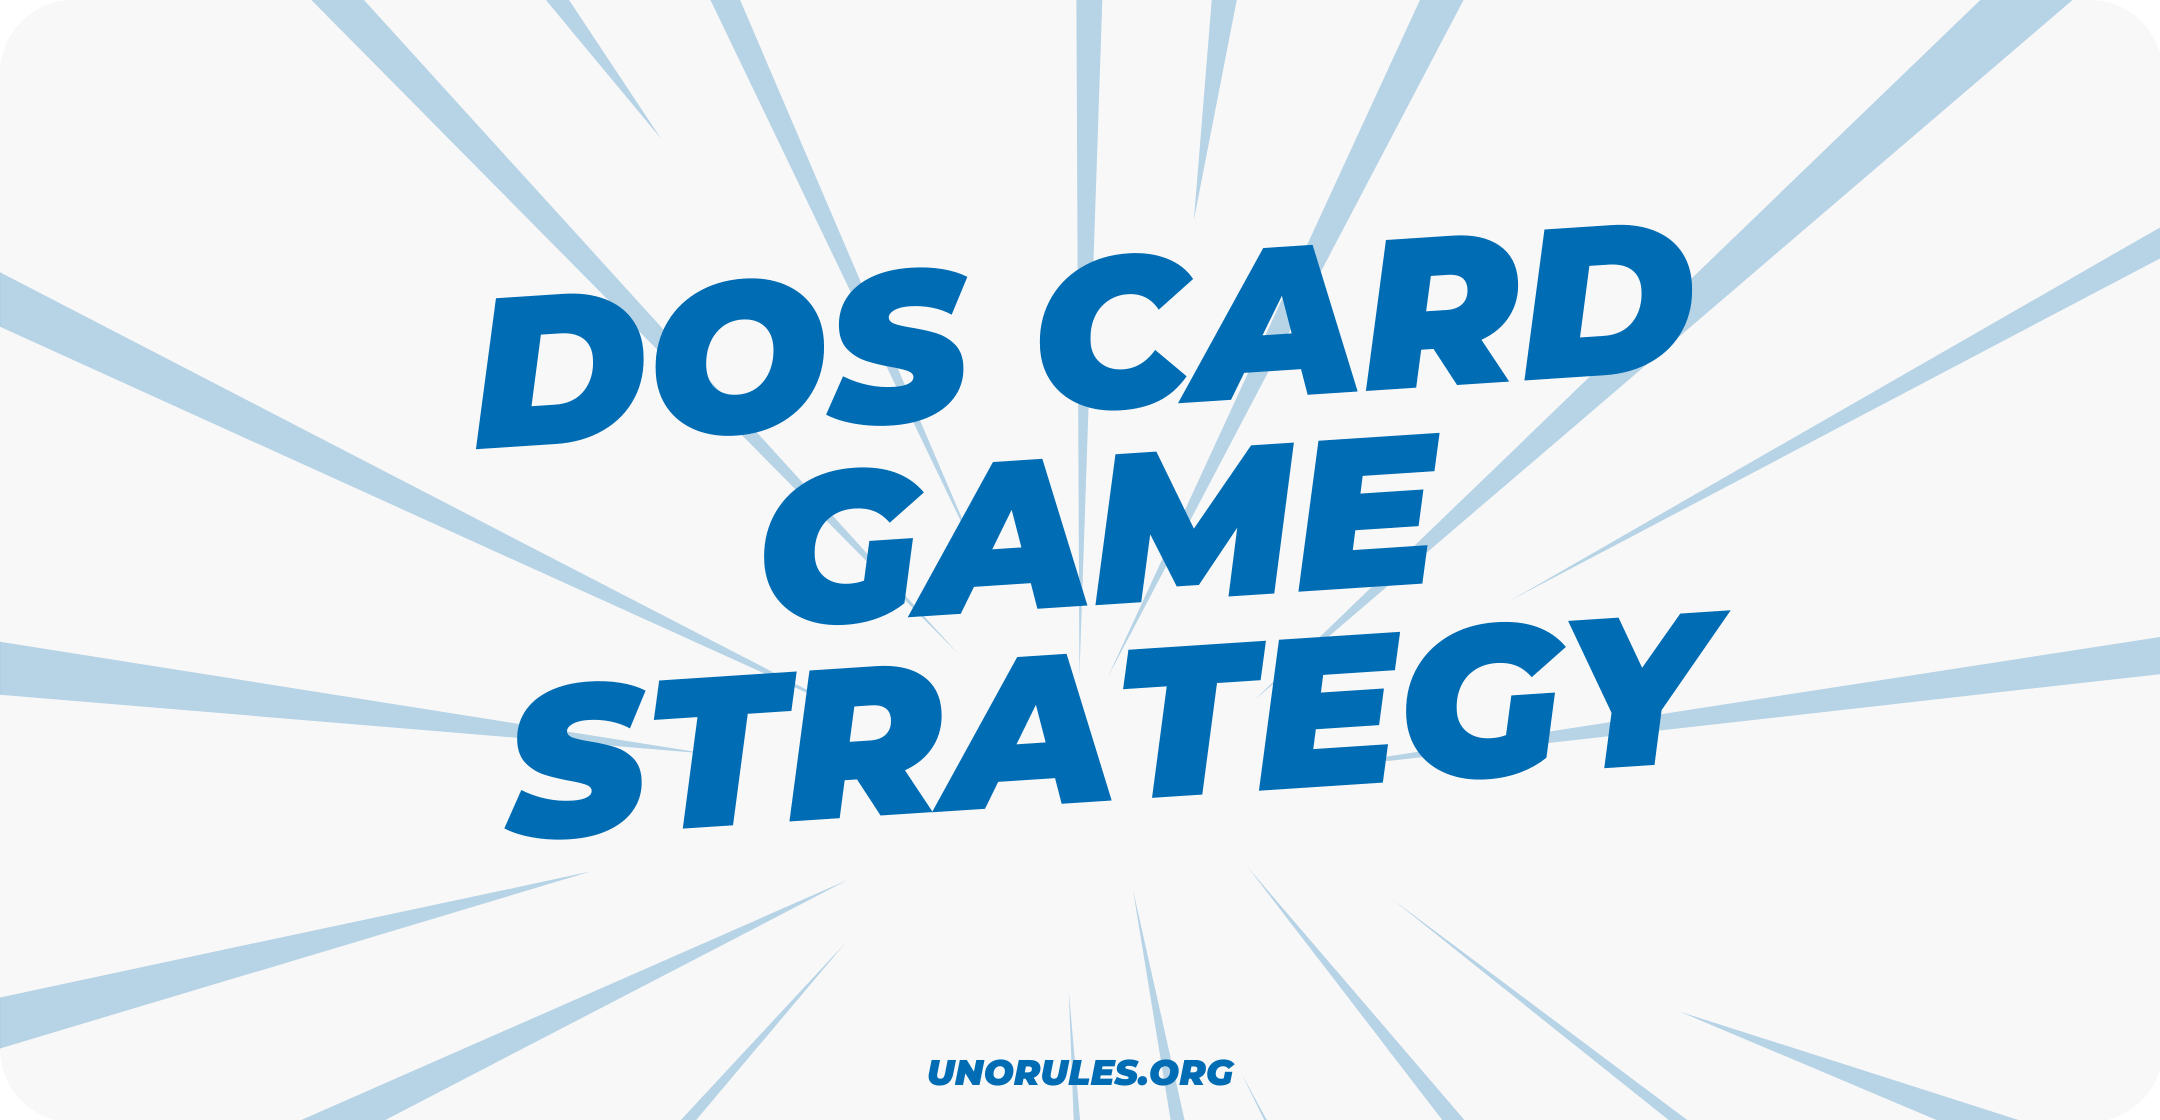 Dos card game strategy